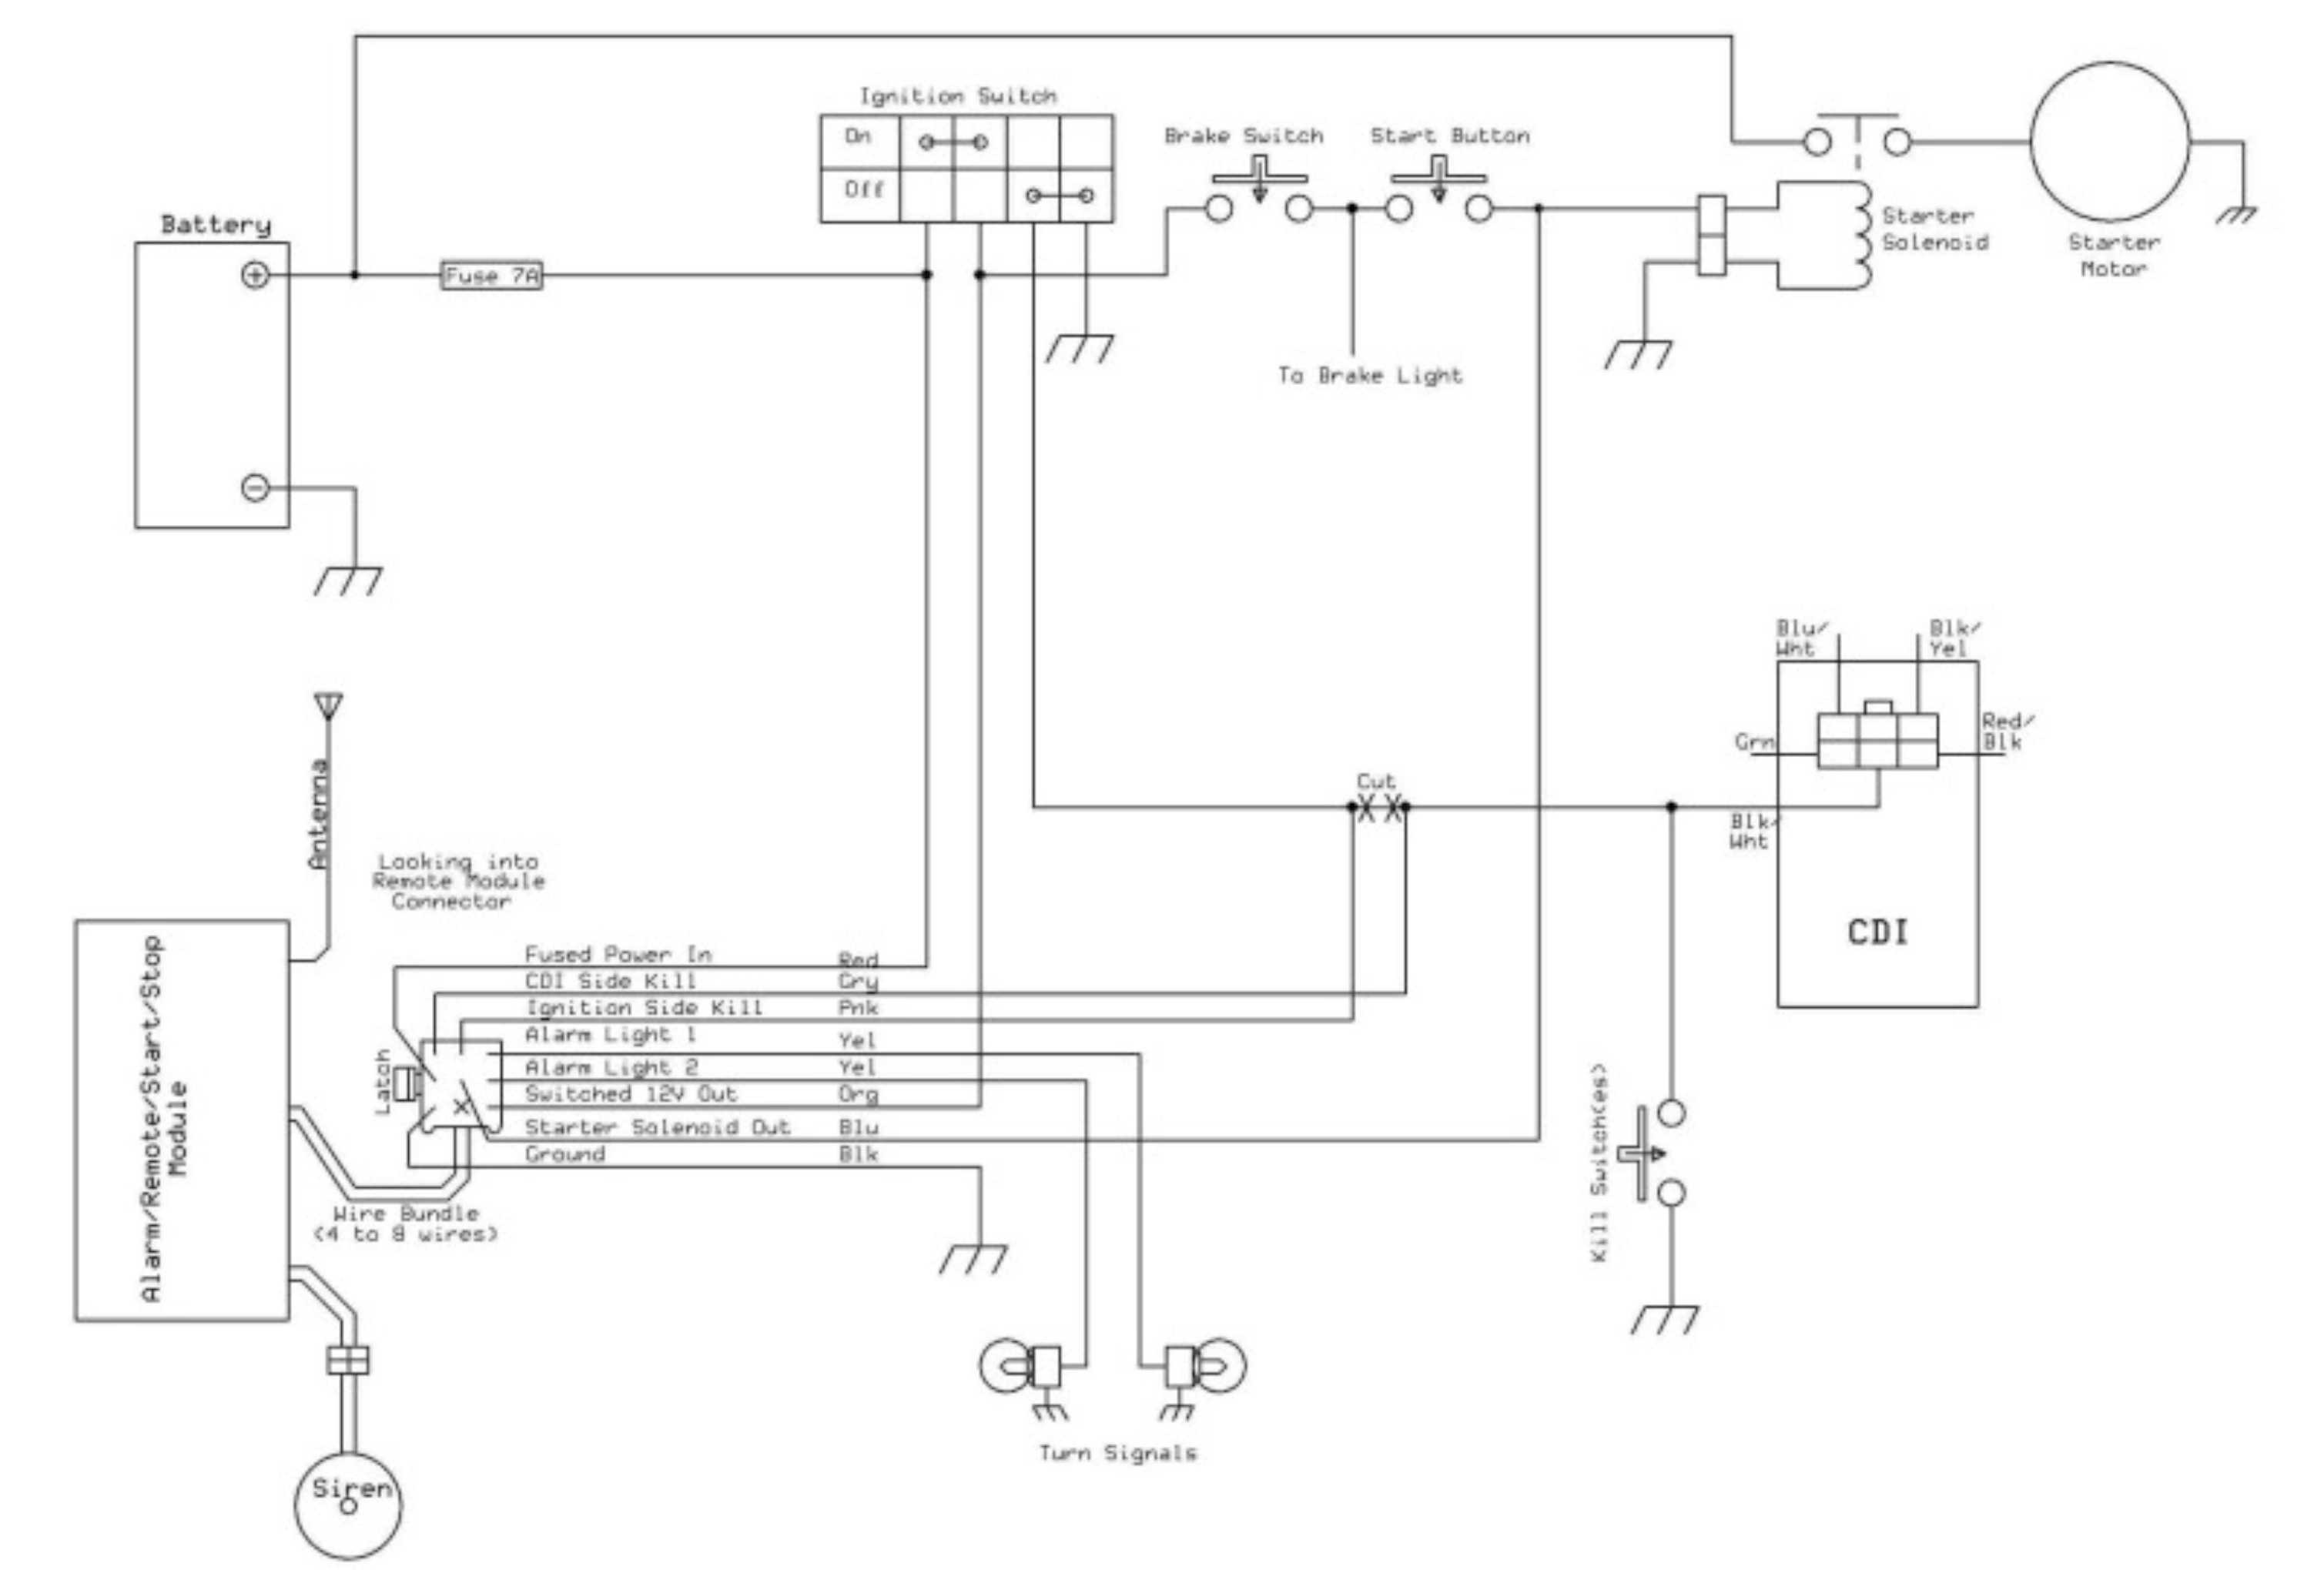 Electra Chopper Gas Scooter Wiring Diagram Libraries Mini Harley Diagrams 43cc Free For You U2022mini